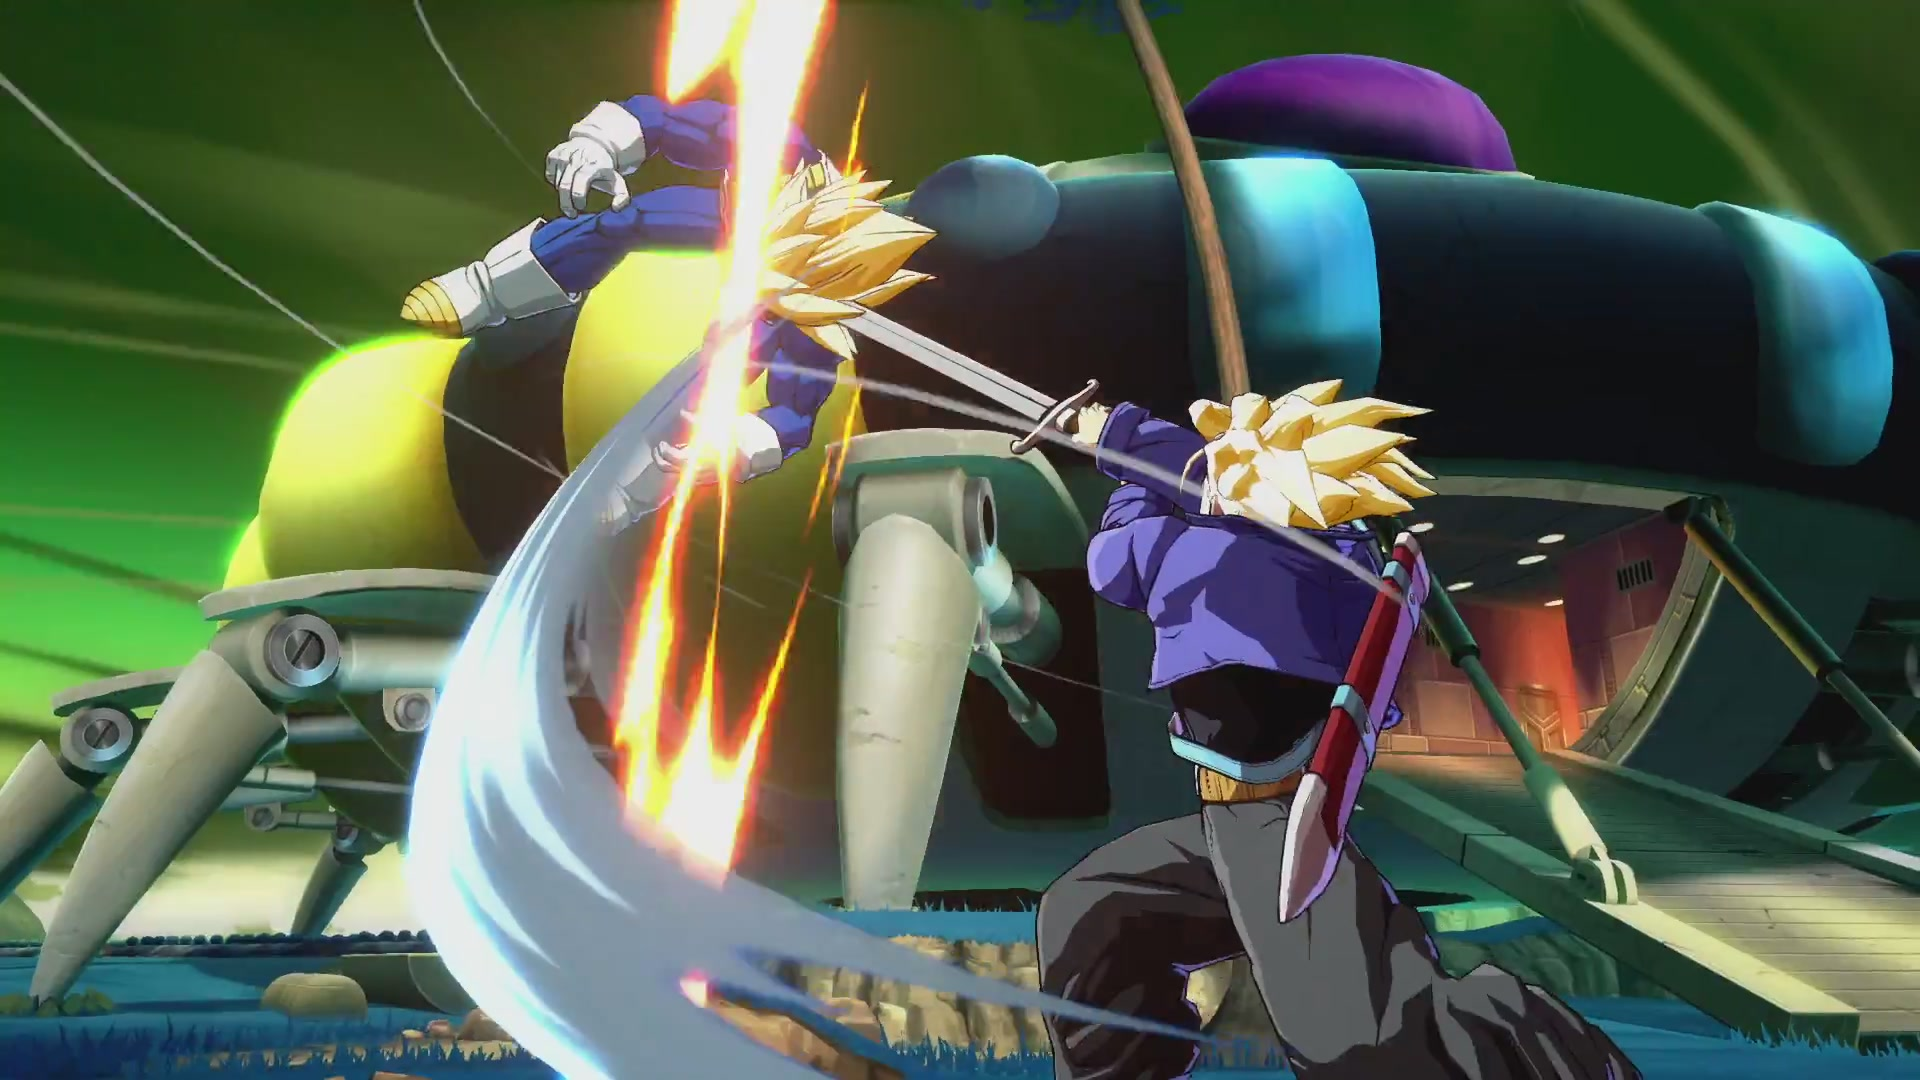 Trunks in Dragon Ball FighterZ 5 out of 12 image gallery